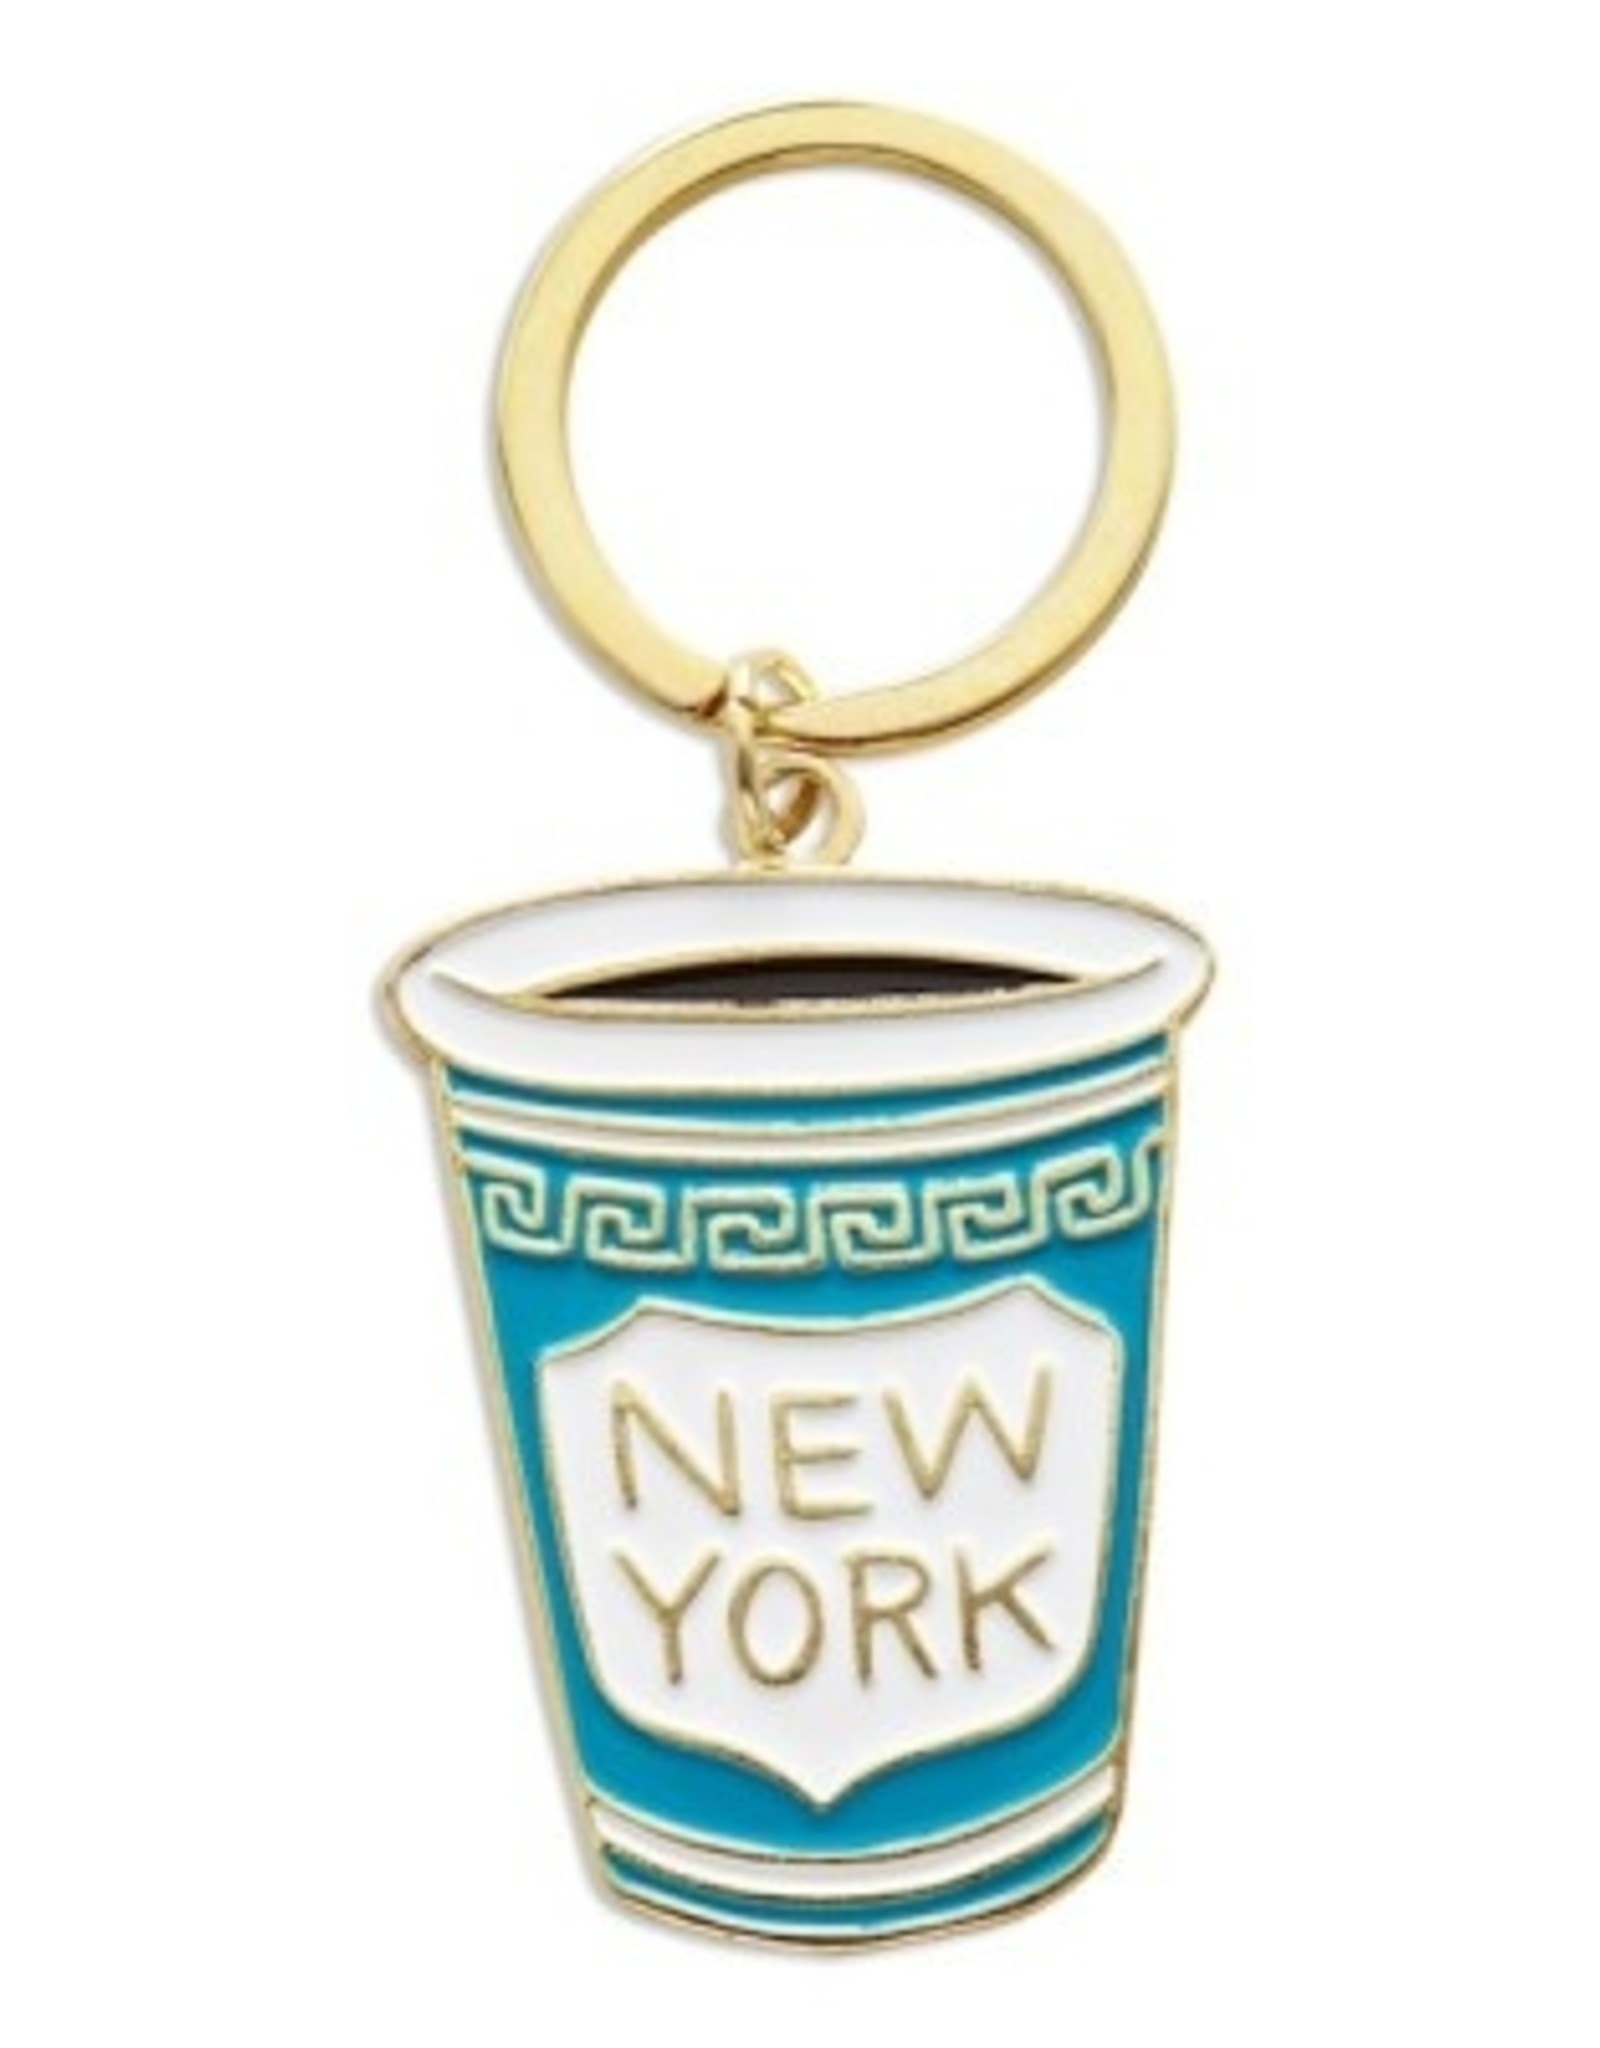 The Found Enamel Keychain